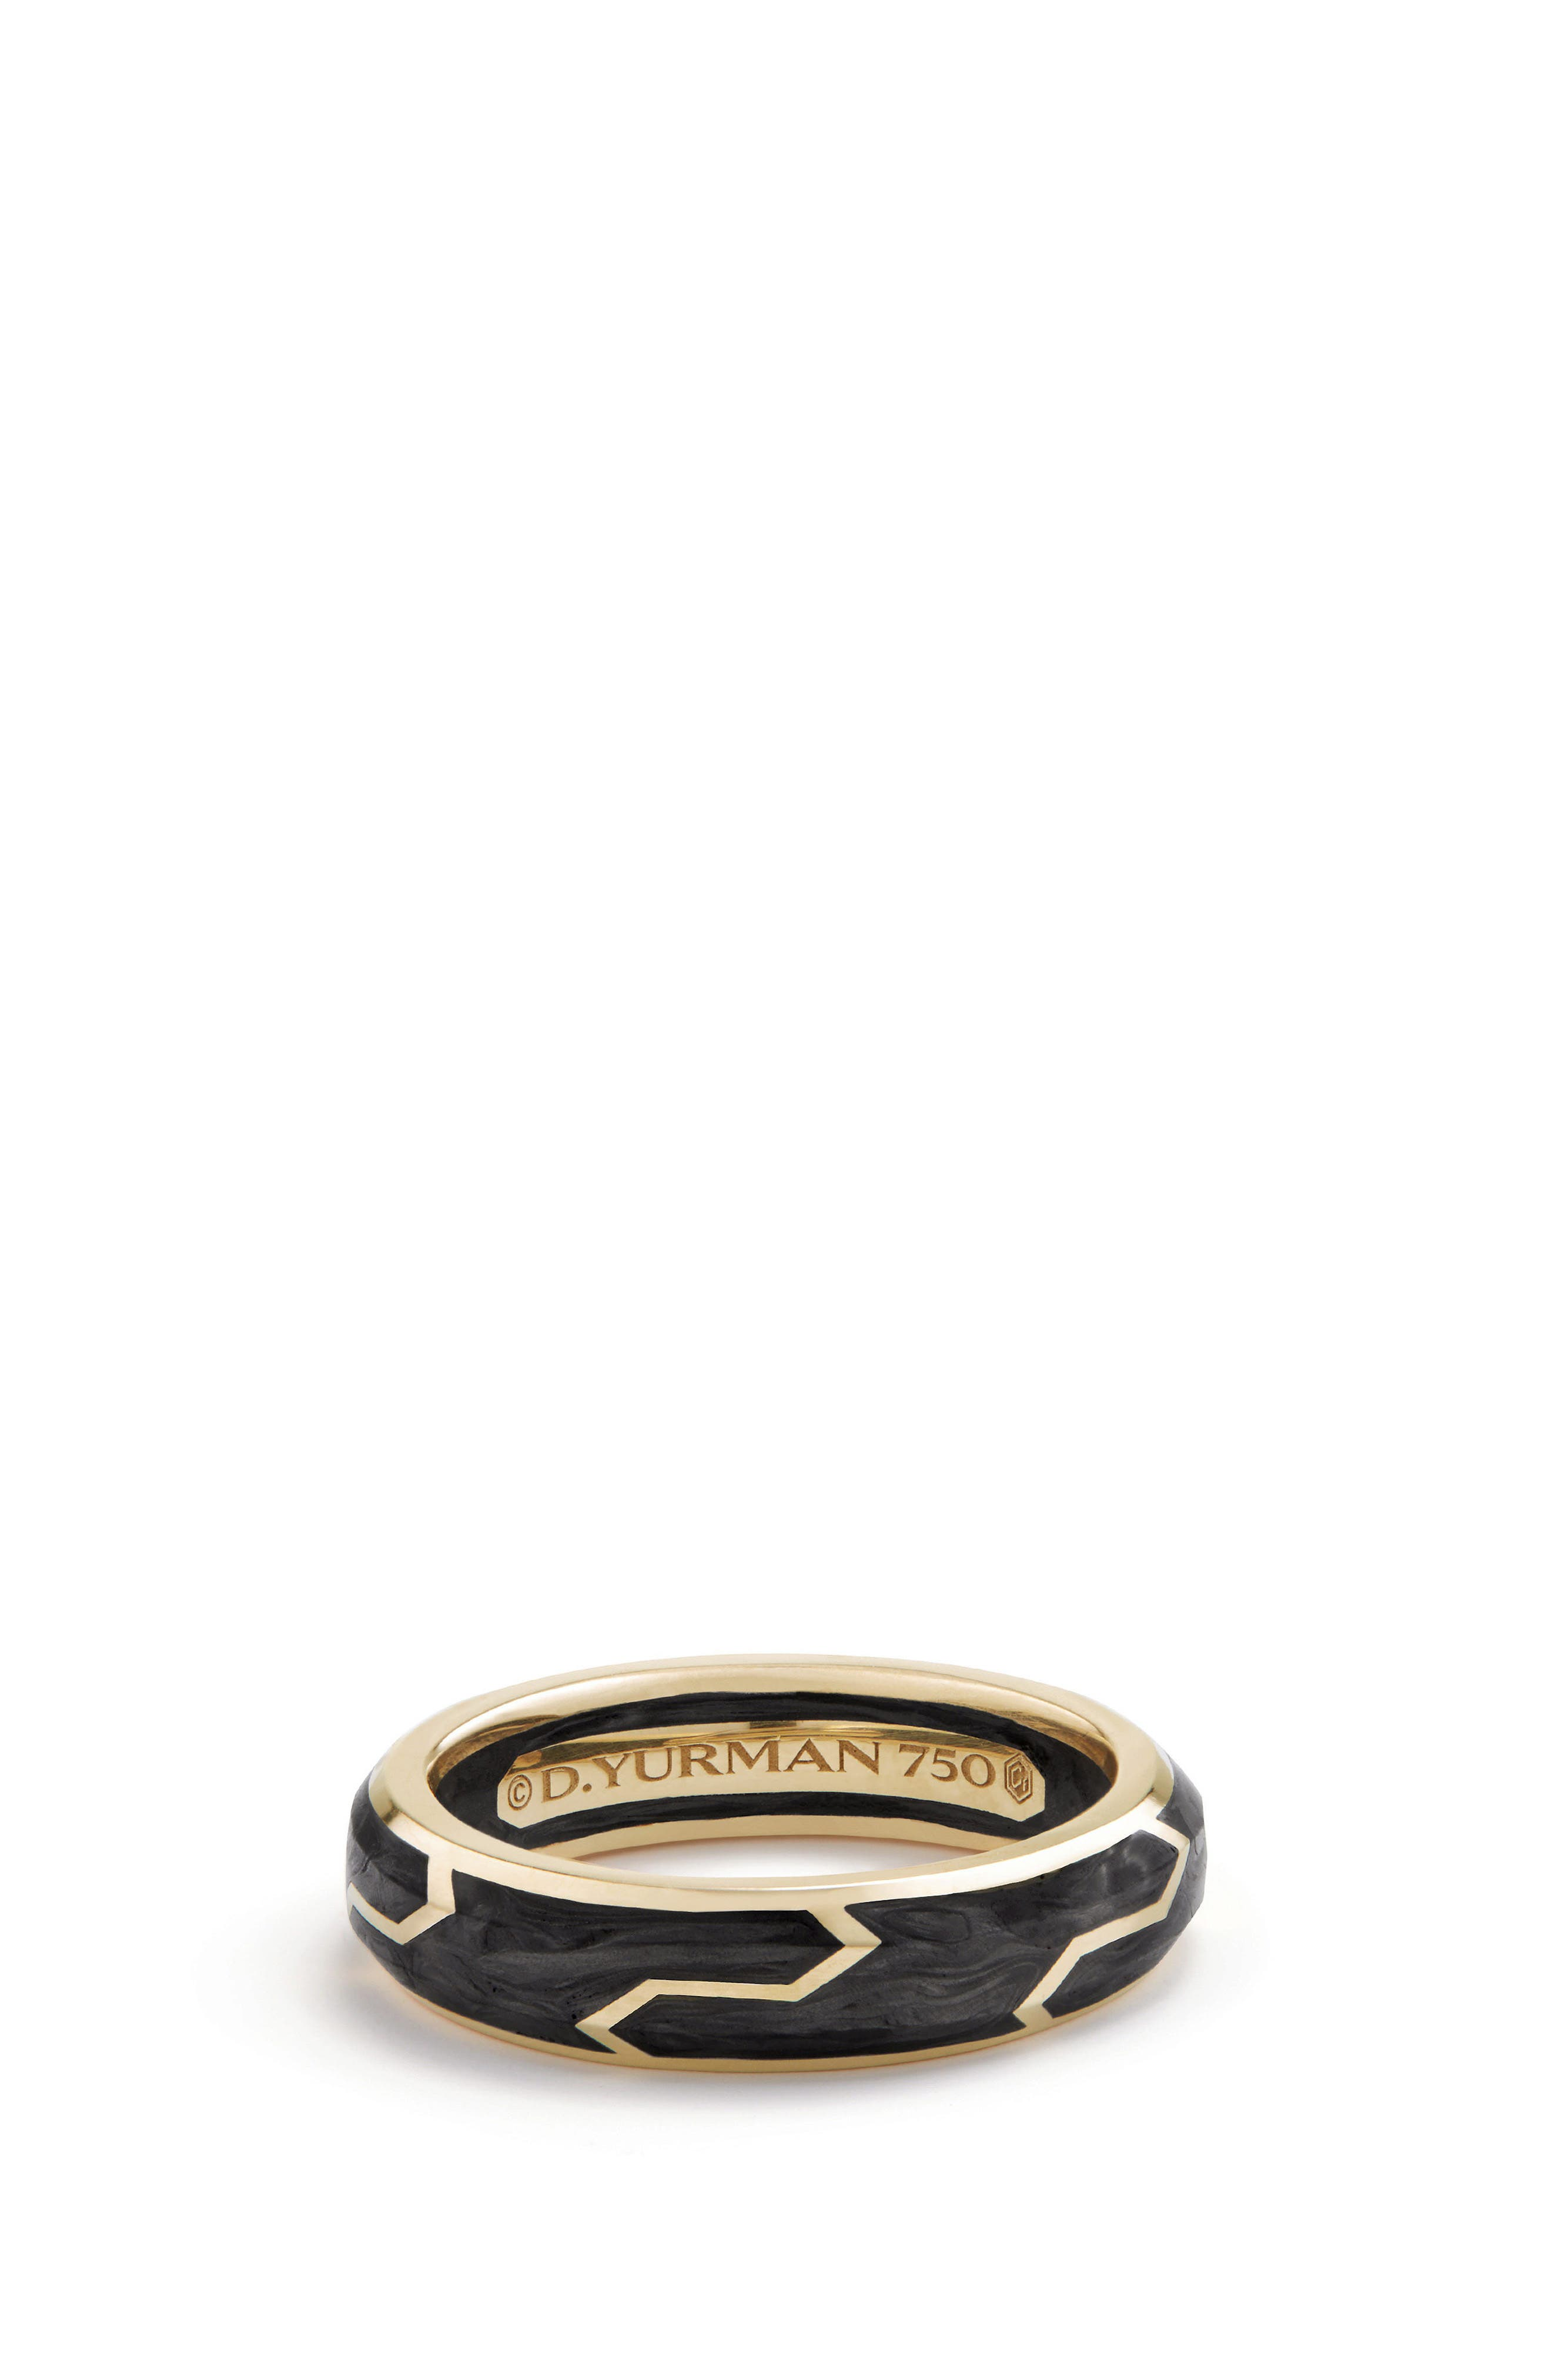 Alternate Image 1 Selected - David Yurman Forged Carbon Band Ring in 18K Gold, 6mm